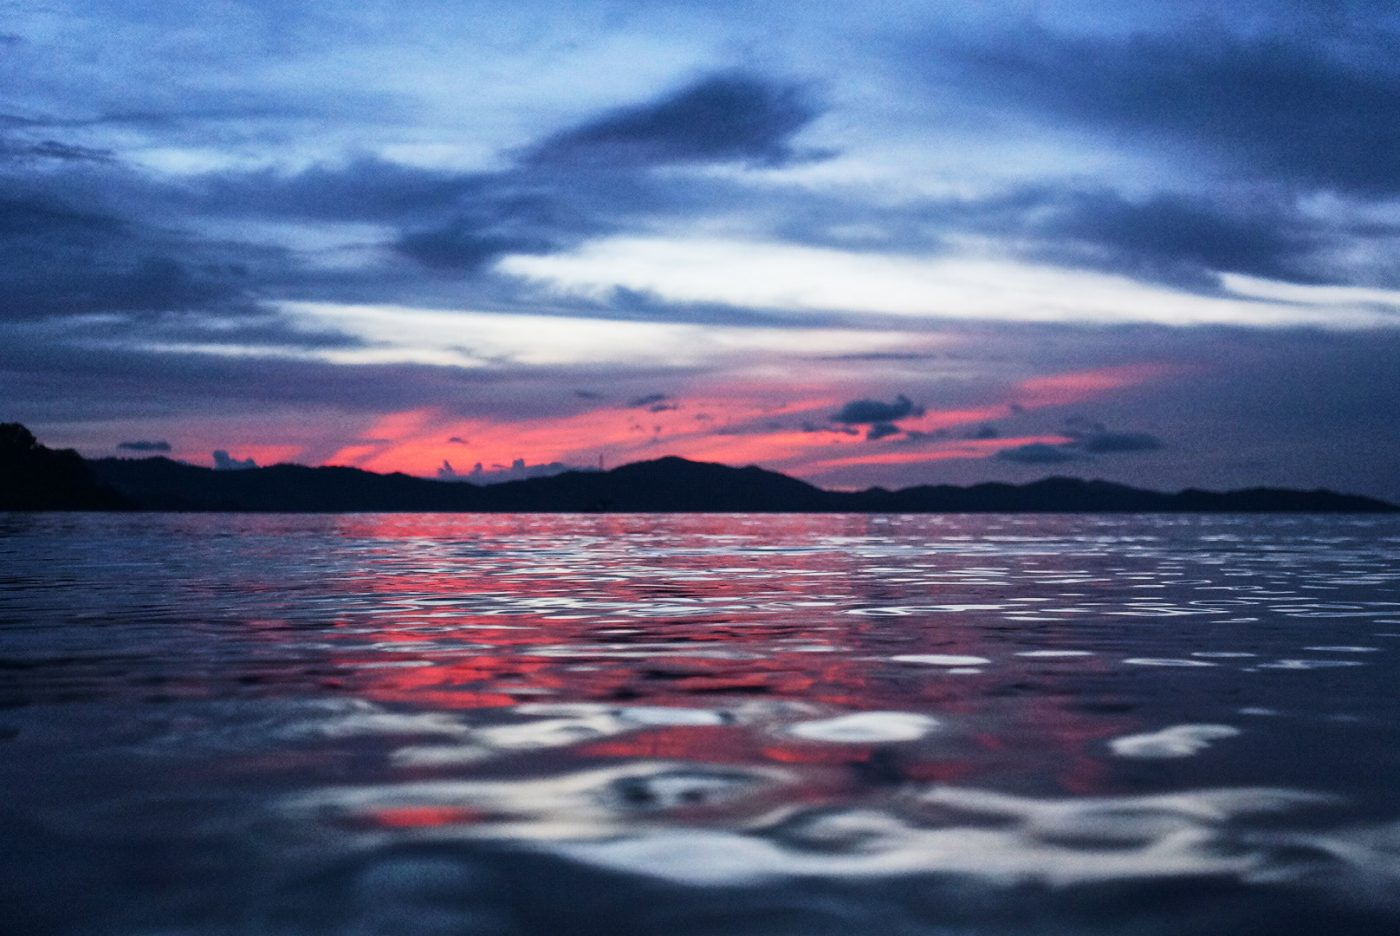 places to watch the sunset: Moody Sunsets In Malaysia